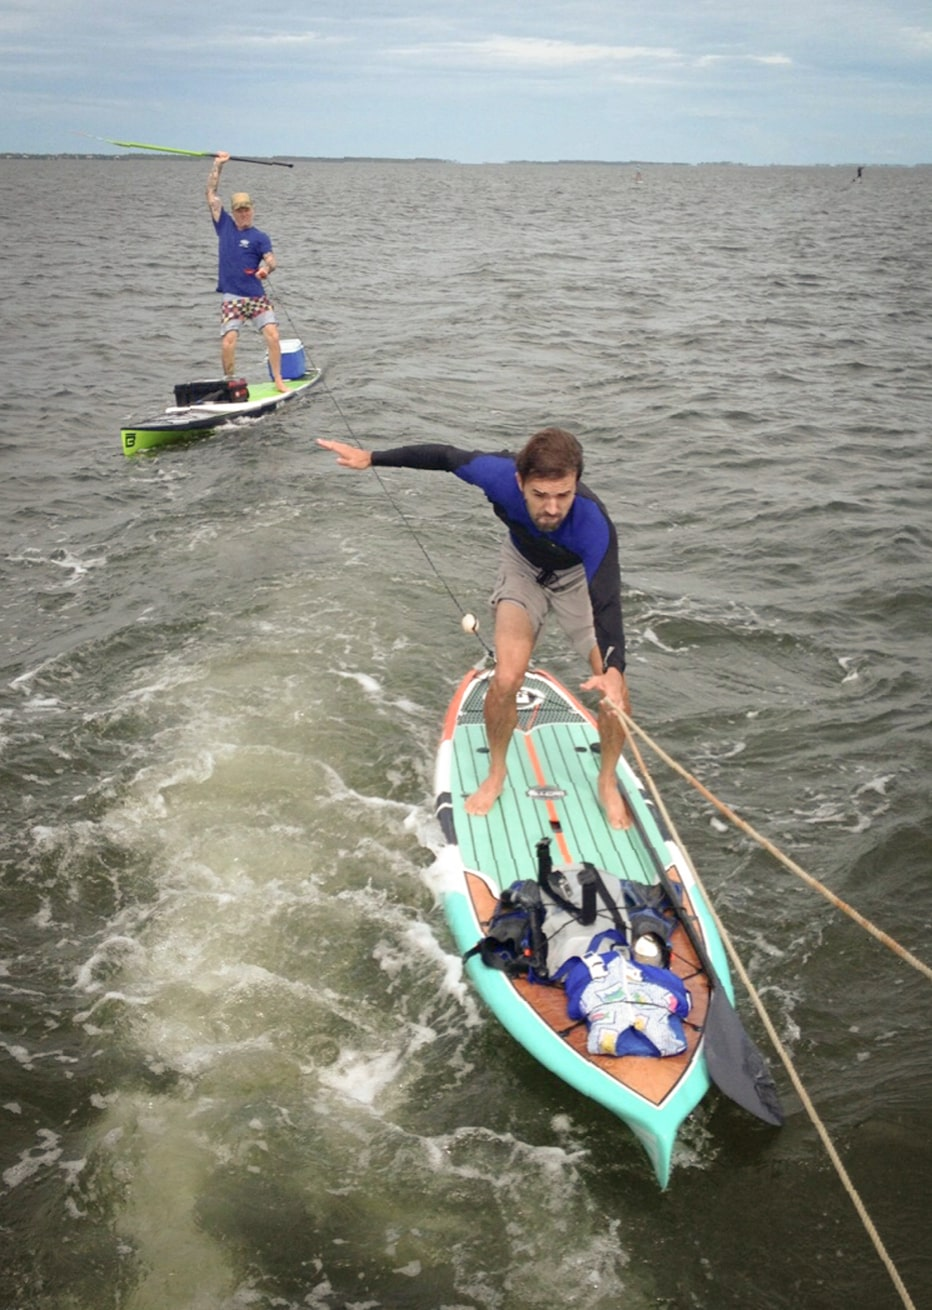 Two Guys Skiing on BOTE Paddle Boards